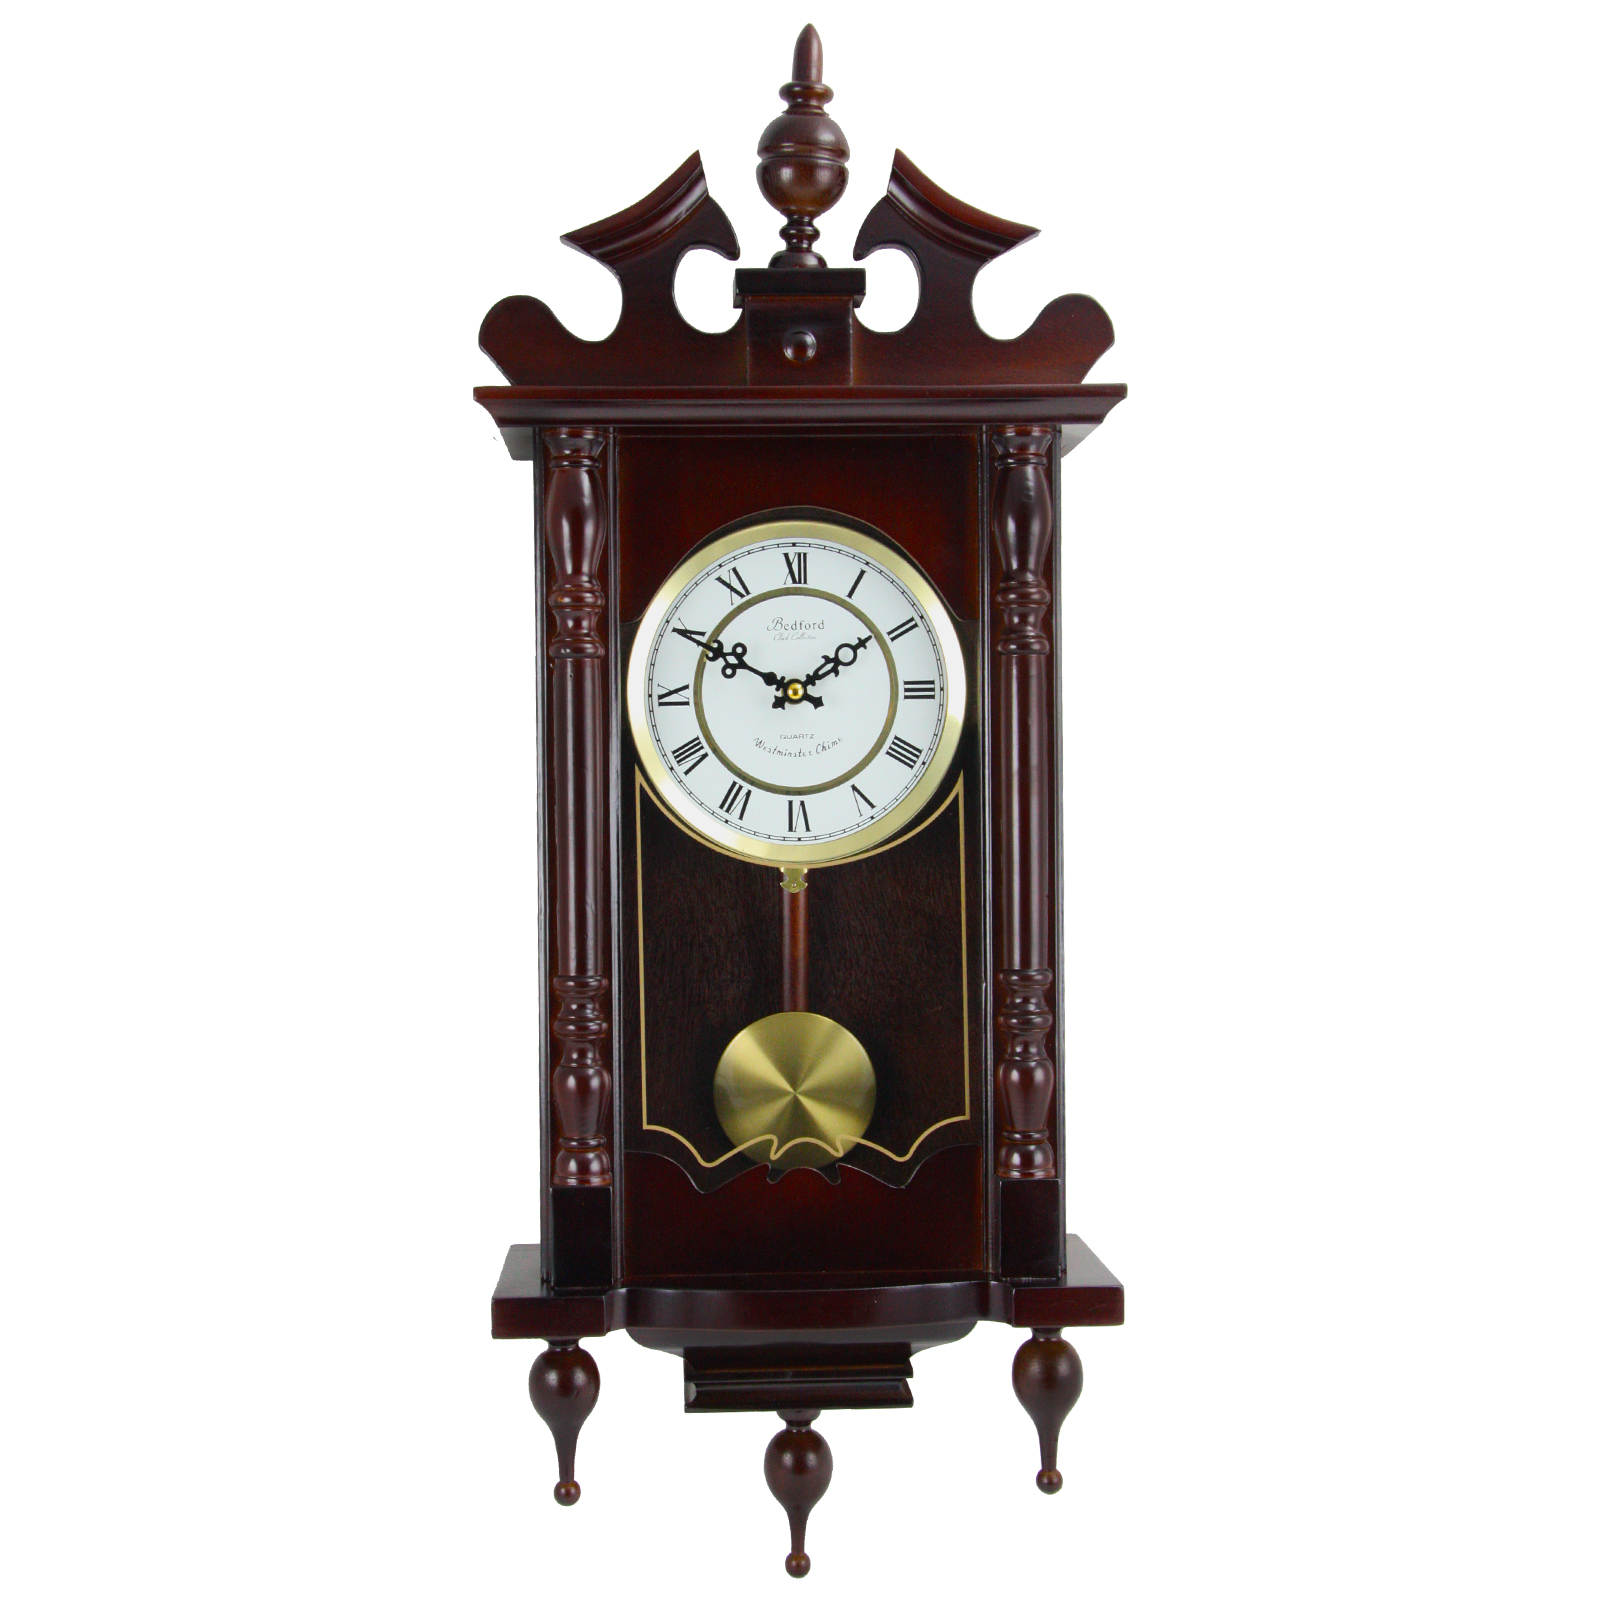 "Bedford Clock Collection Classic 31"" Chiming Wall Clock With Roman Numerals And A... by Bedford Clock Collection"